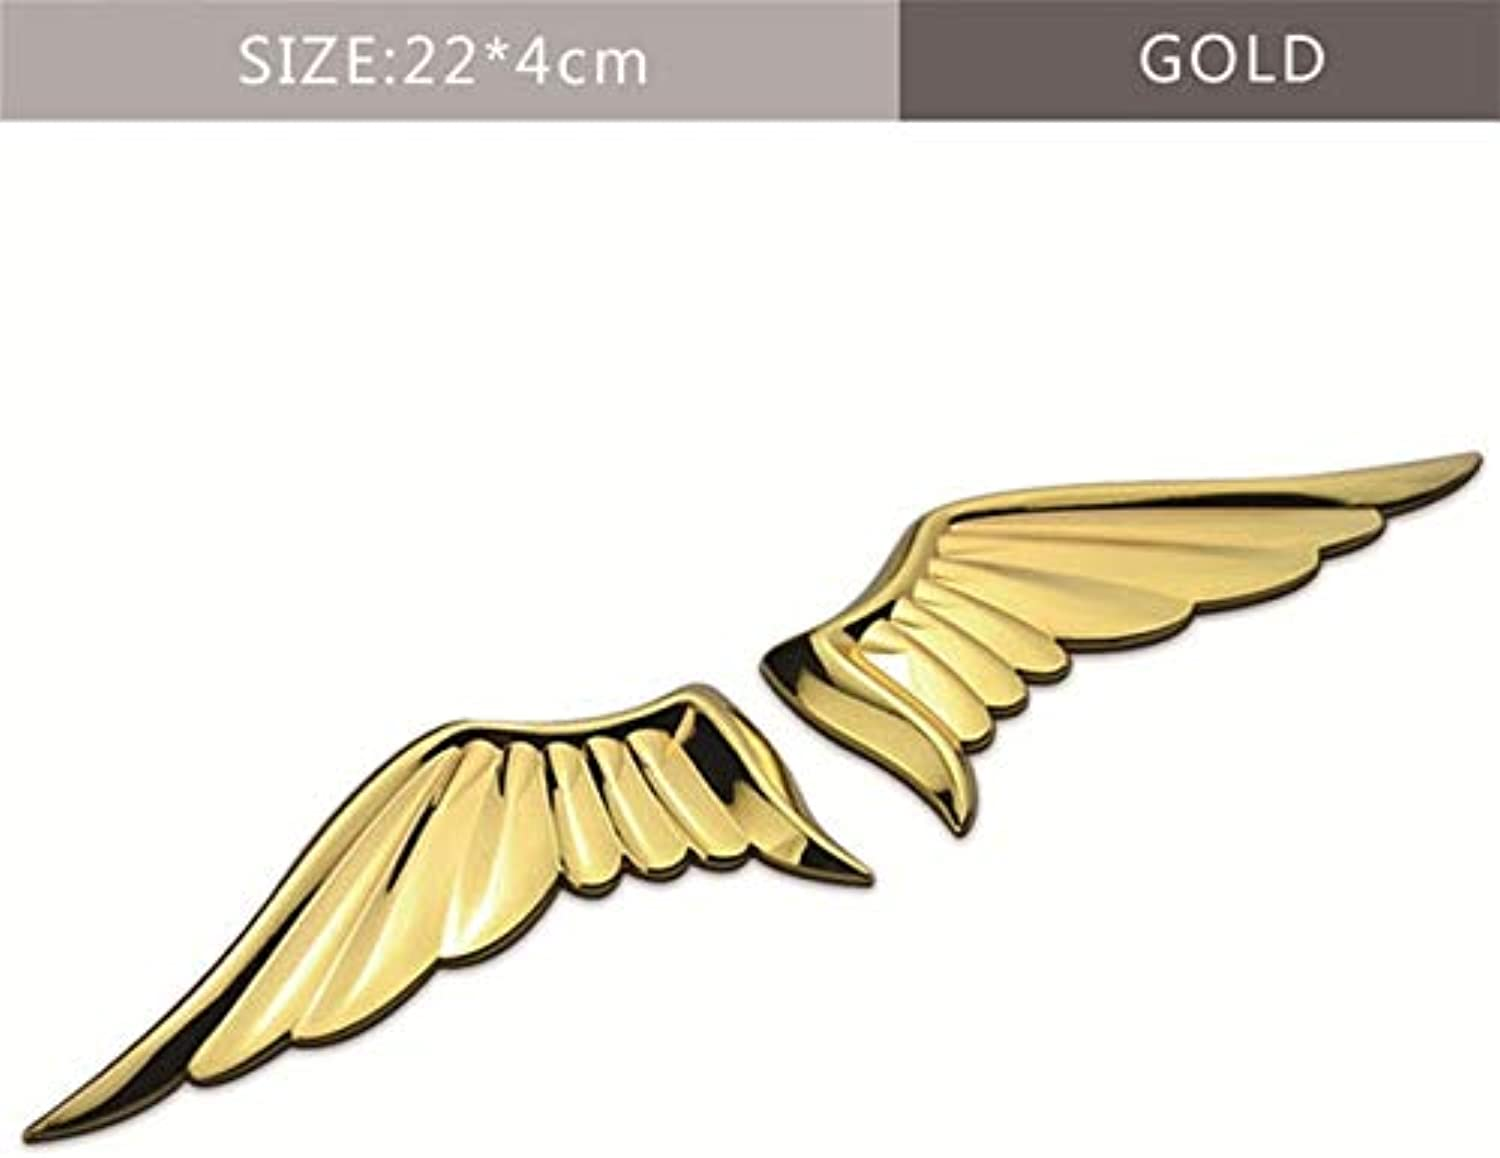 Auto Sticker Angel Wing Logo Rear Emblem for Peugeot Mitsubishi Volkswagen Chevrolet Dodge for Jeep Seat Nissan Volvo Hyundai  (color Name  gold)